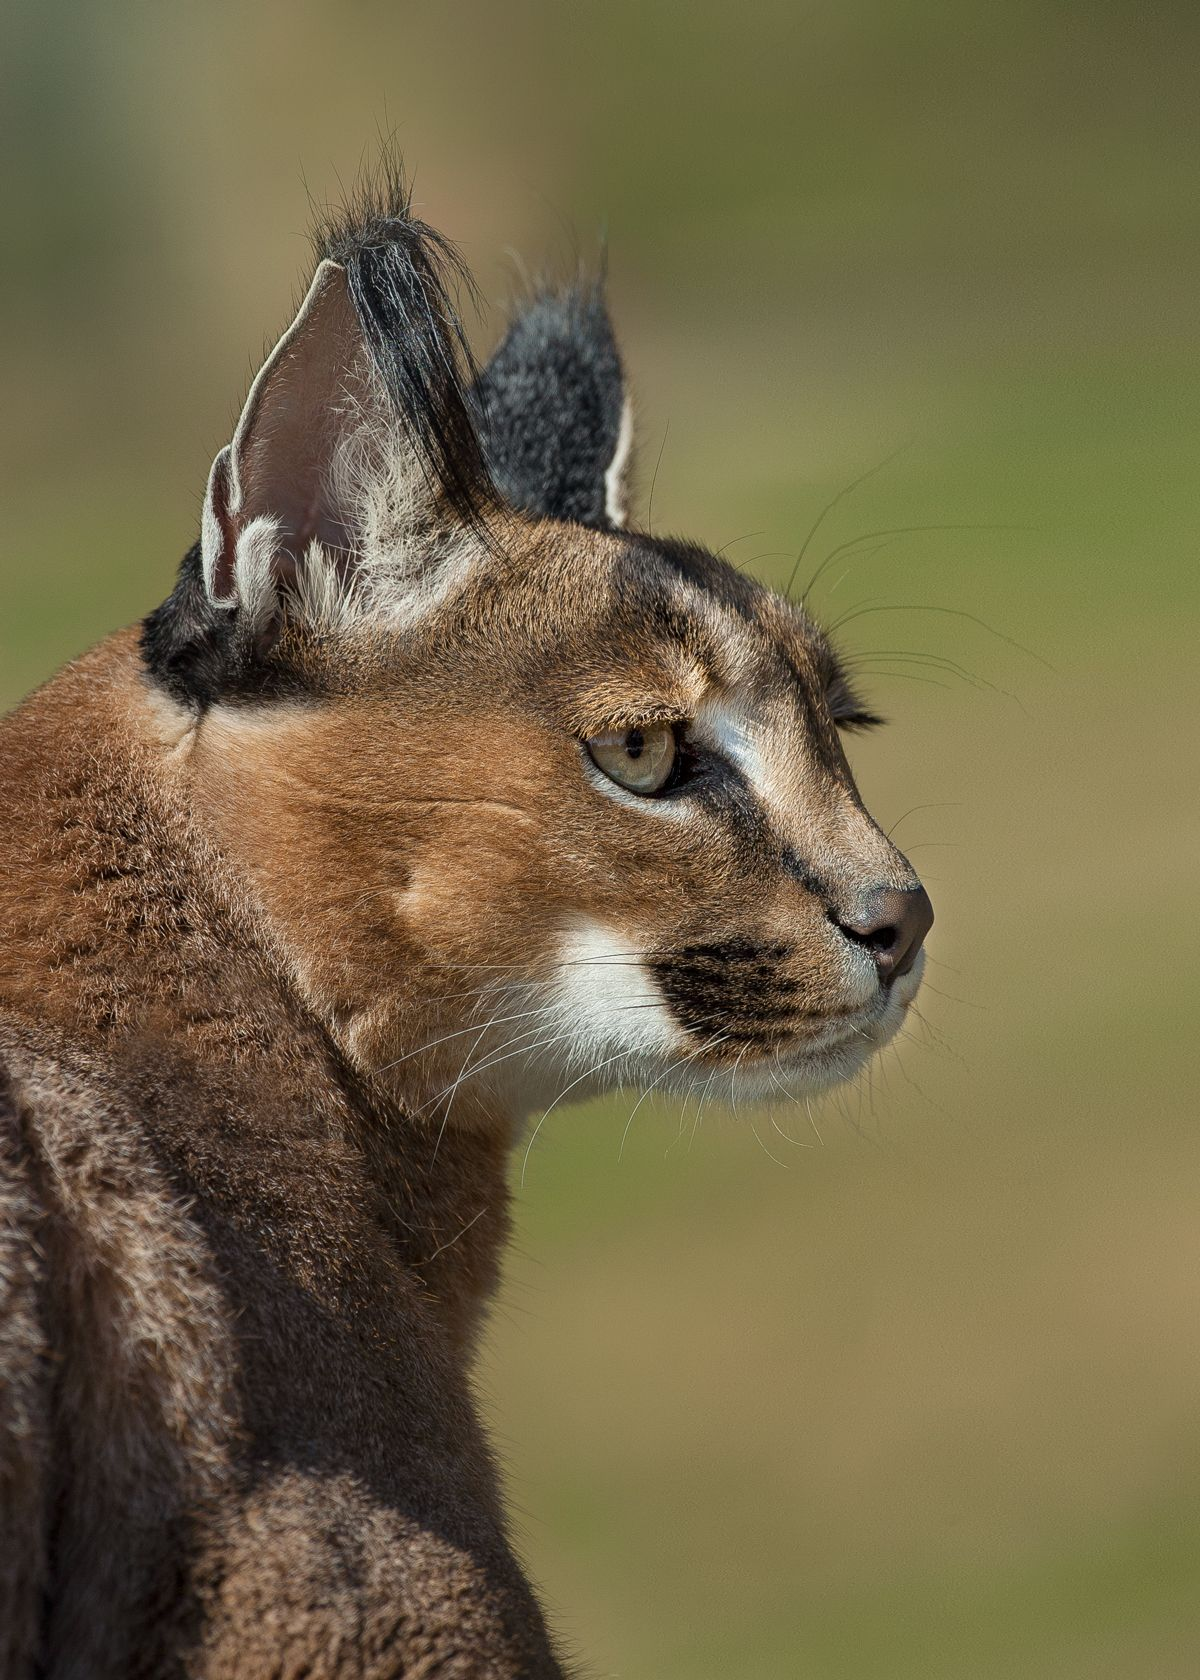 The most noticeable feature of a caracal is its black ear